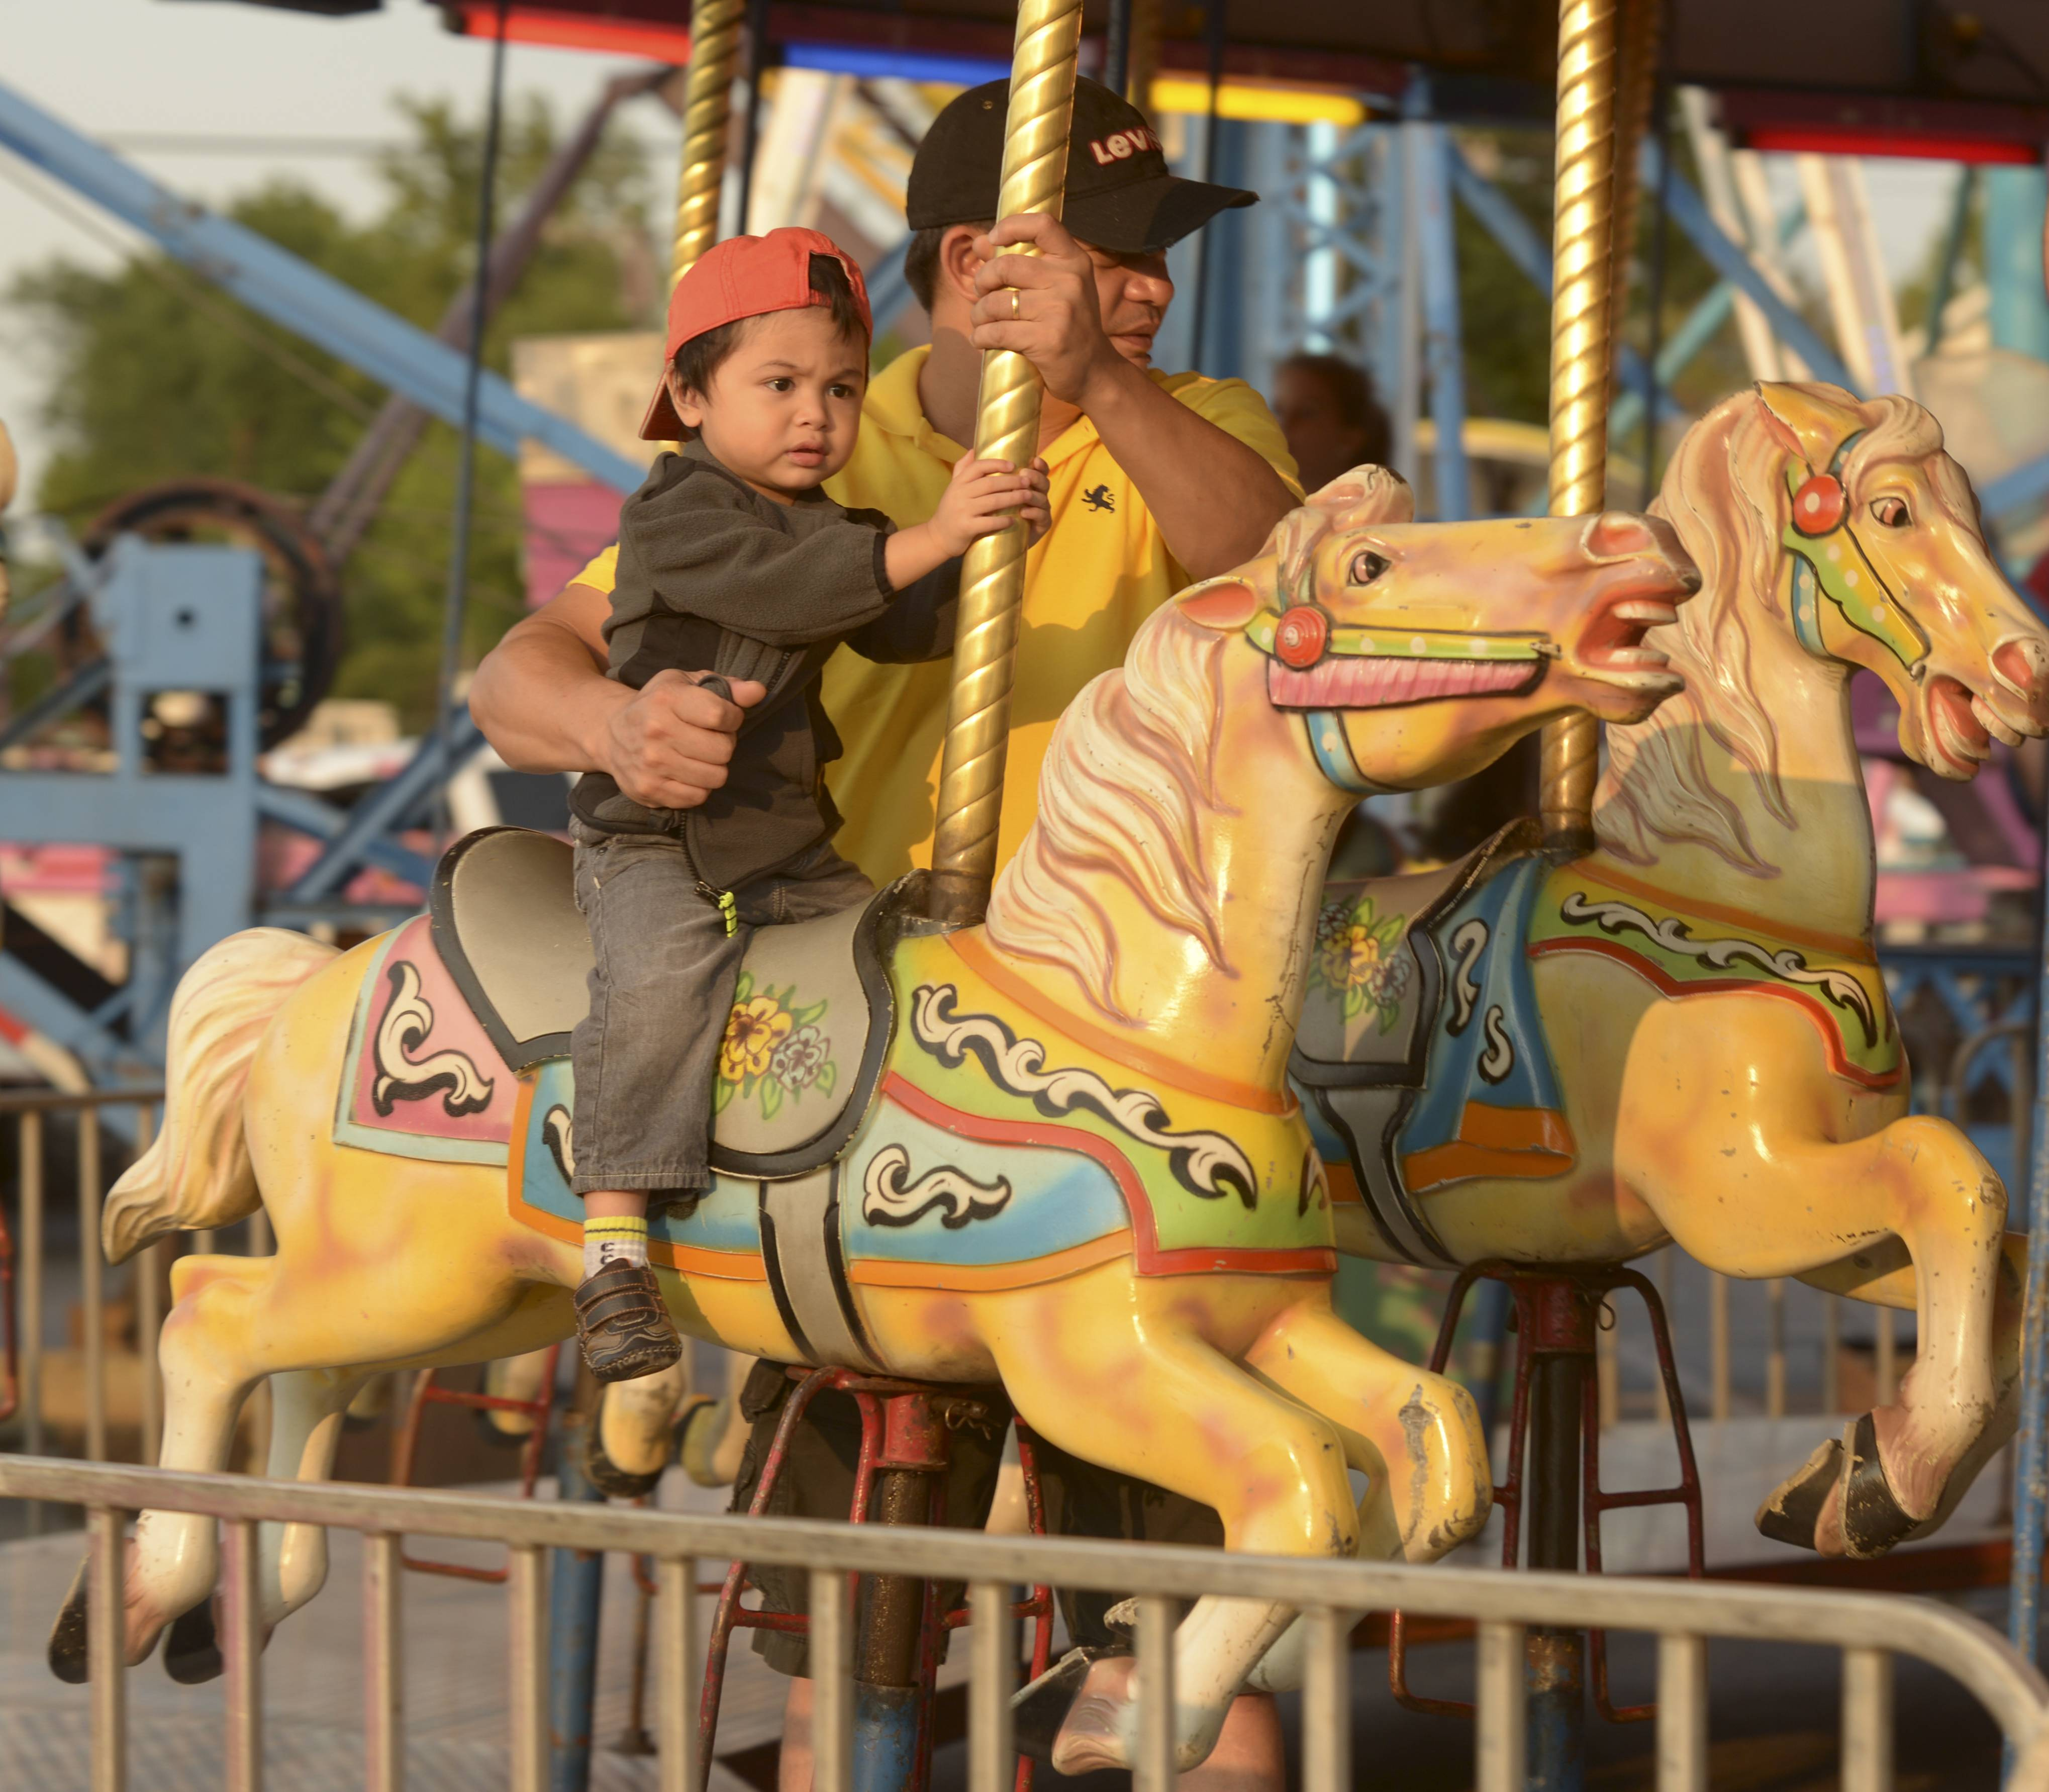 Randy Ocampo of Lombard and his son Jude, 2, ride the carousel at Sacred Heart's annual Germanfest in Lombard. The festival runs through Sunday in the church's parking lot, 114 S. Elizabeth St.